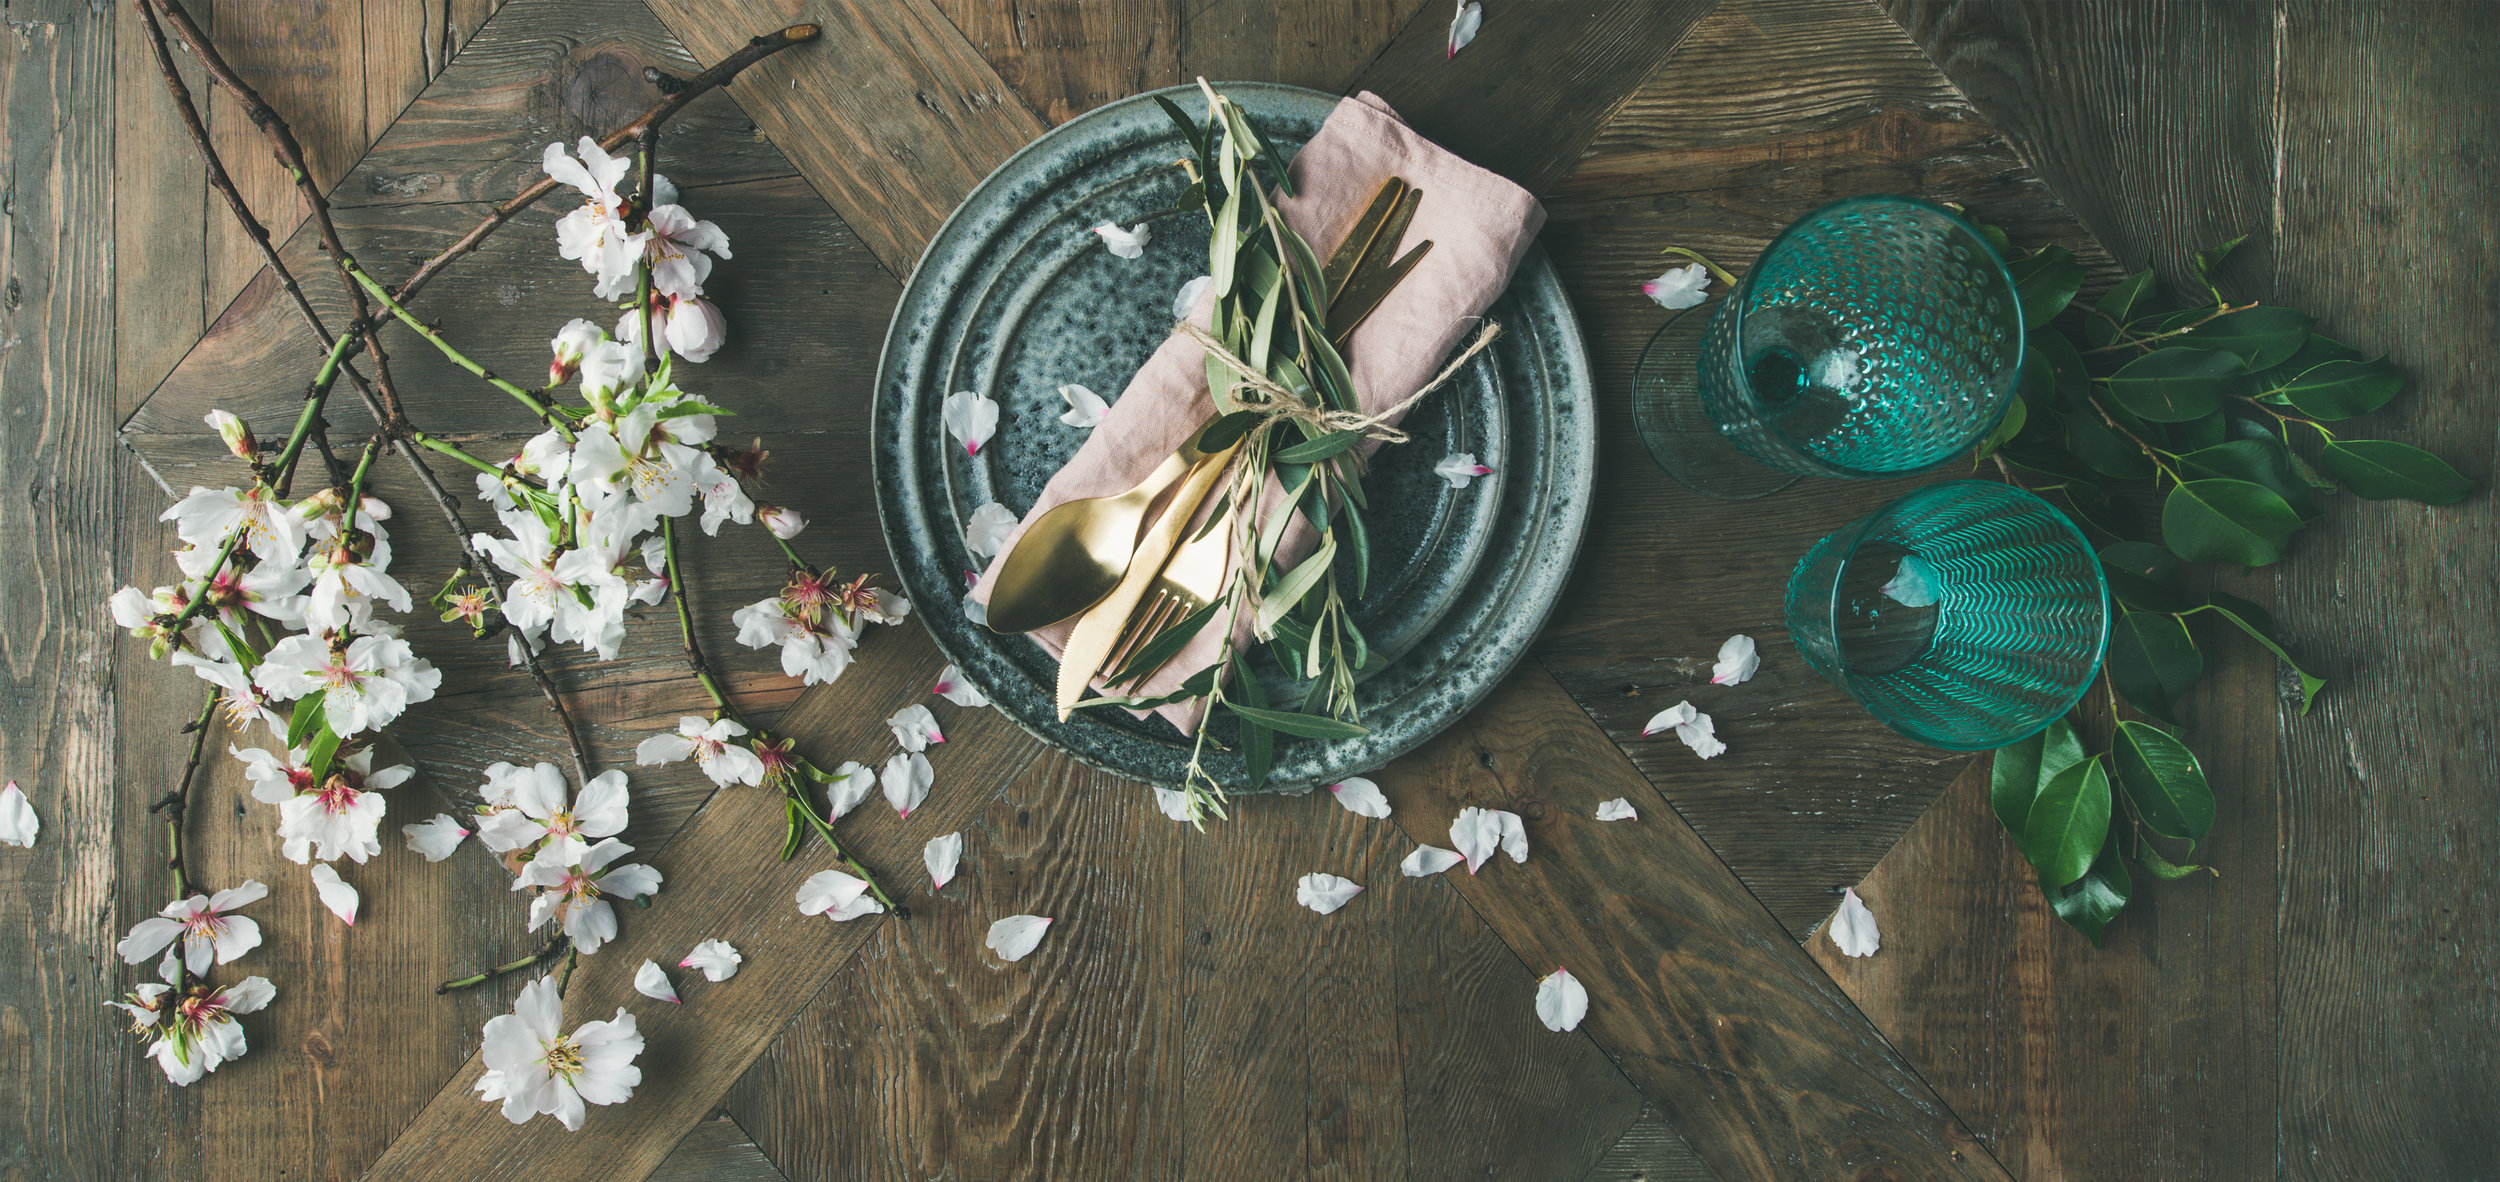 Decor 4% - Table decor by Waterfall Wedding Decor from The White Company